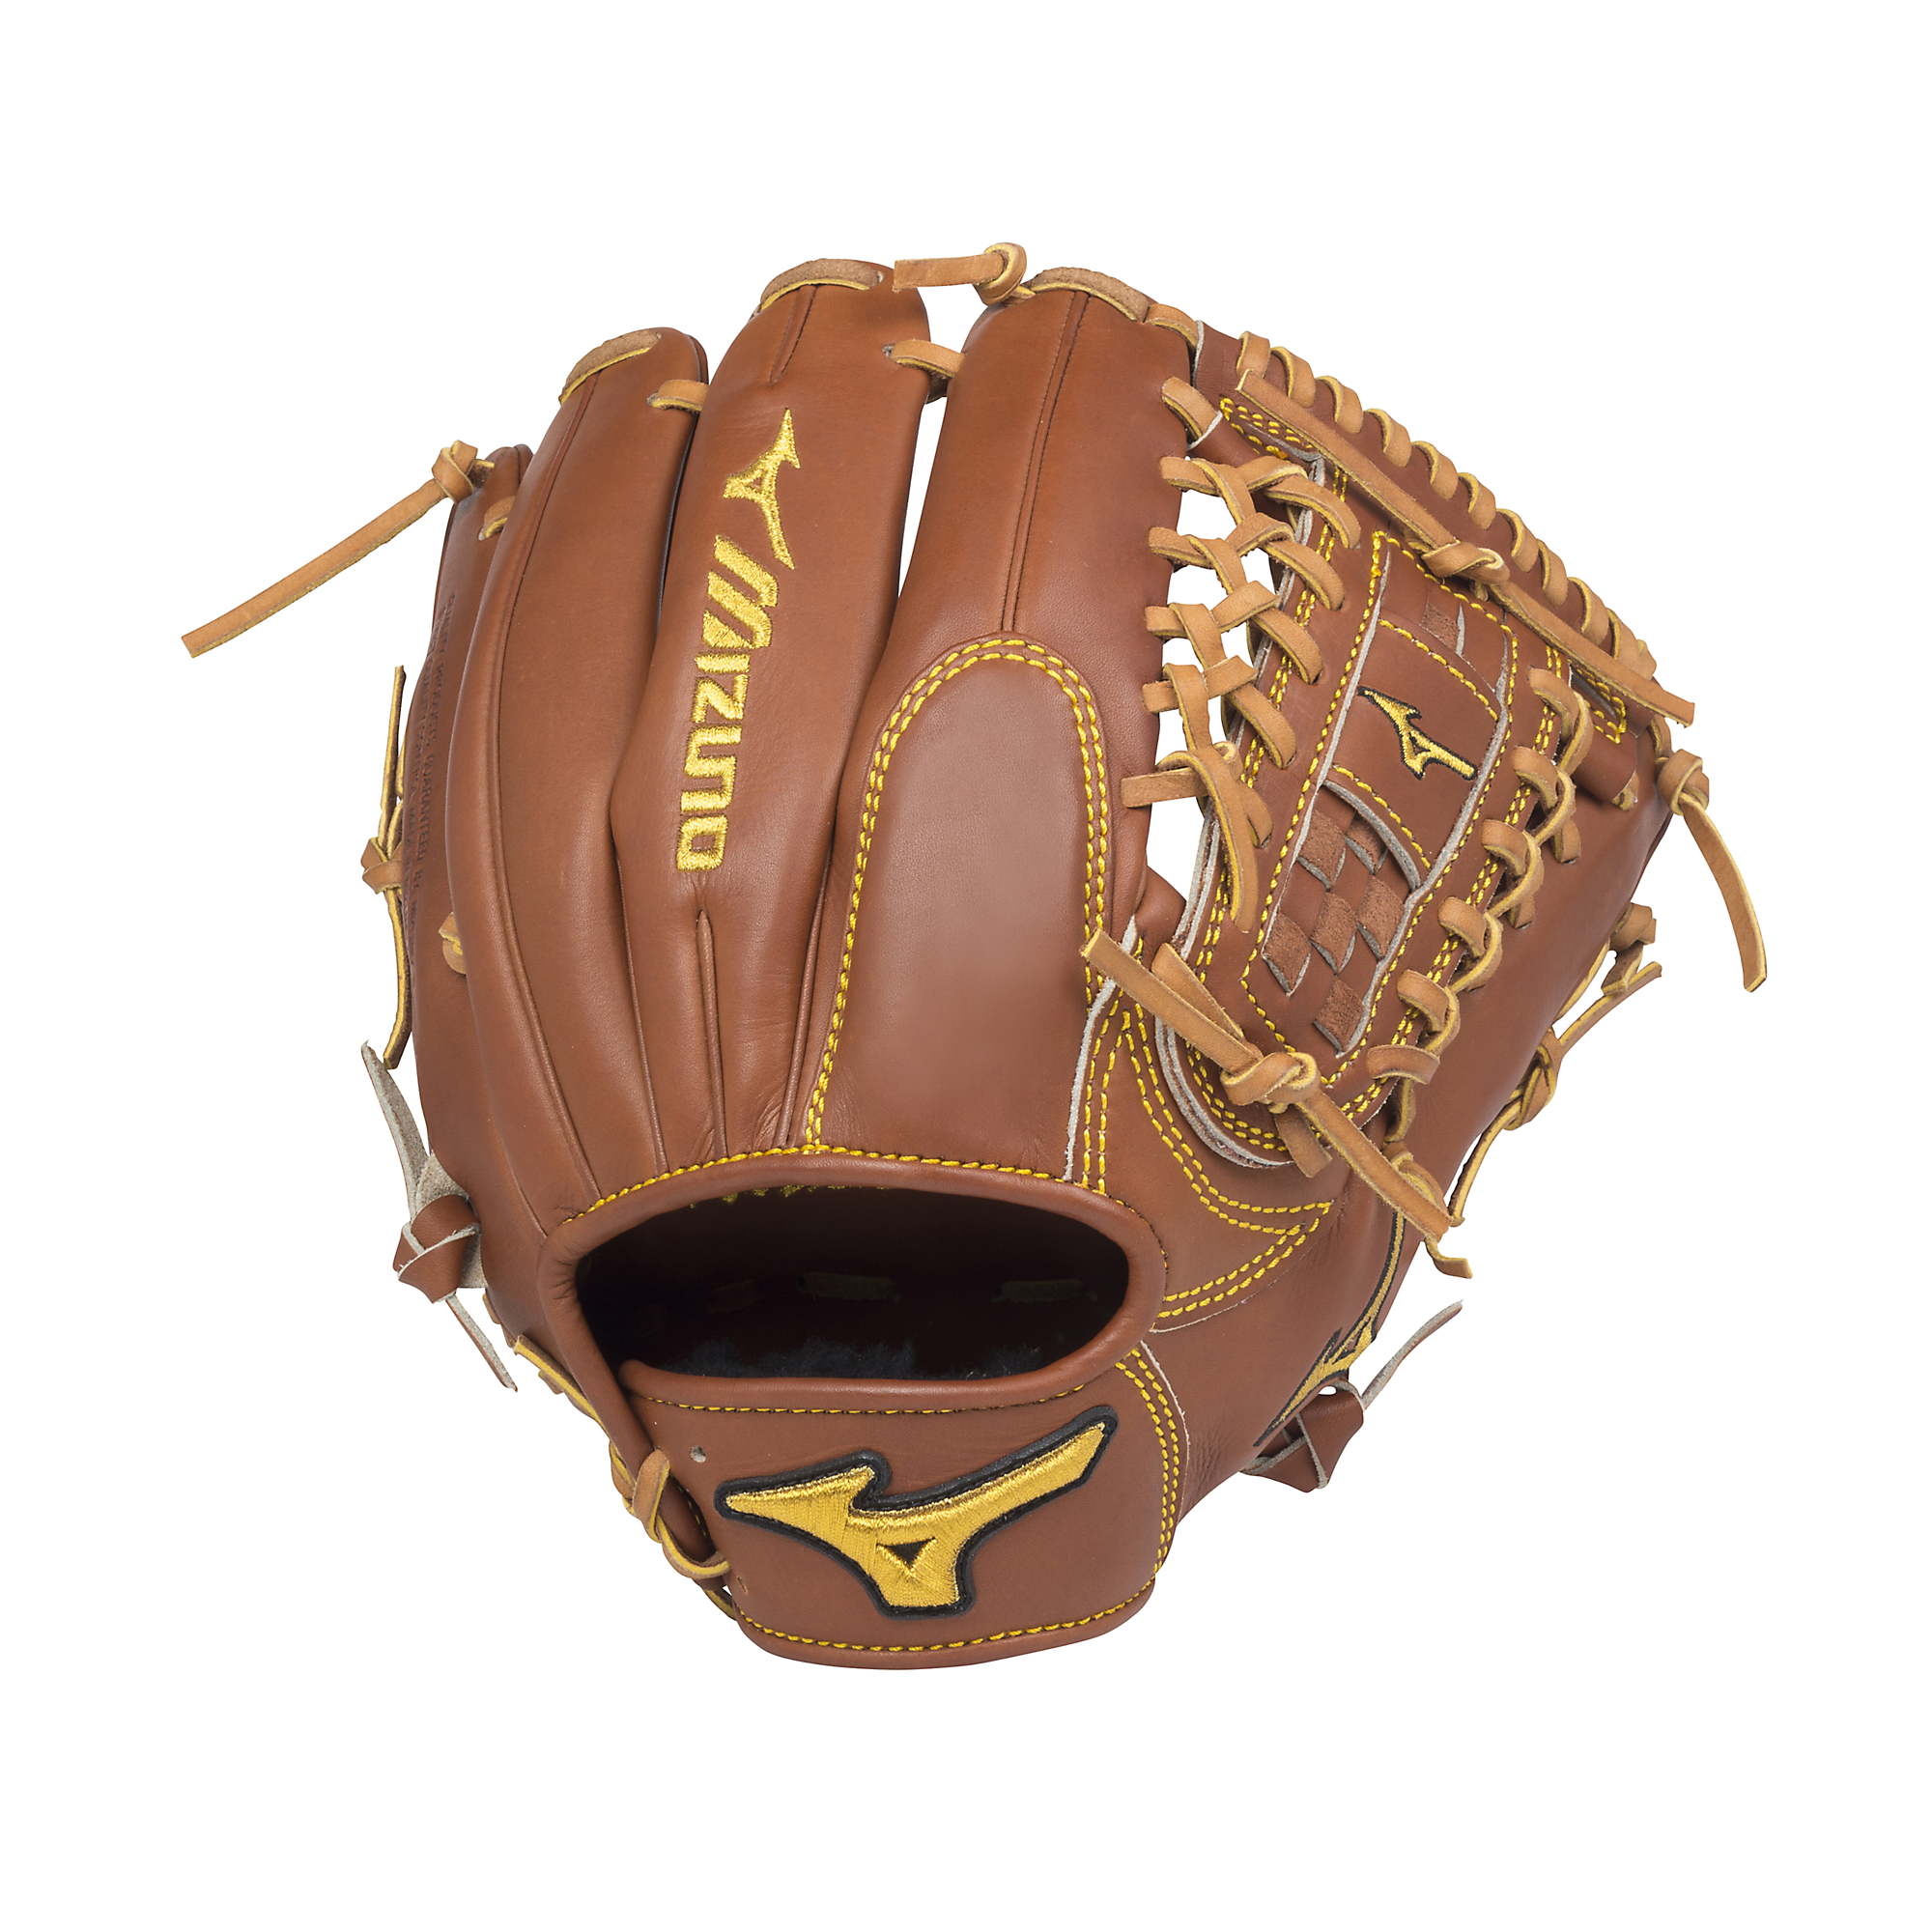 "Mizuno 12"" Pro Limited Edition Series Pitcher Baseball Glove, Left Hand Throw"